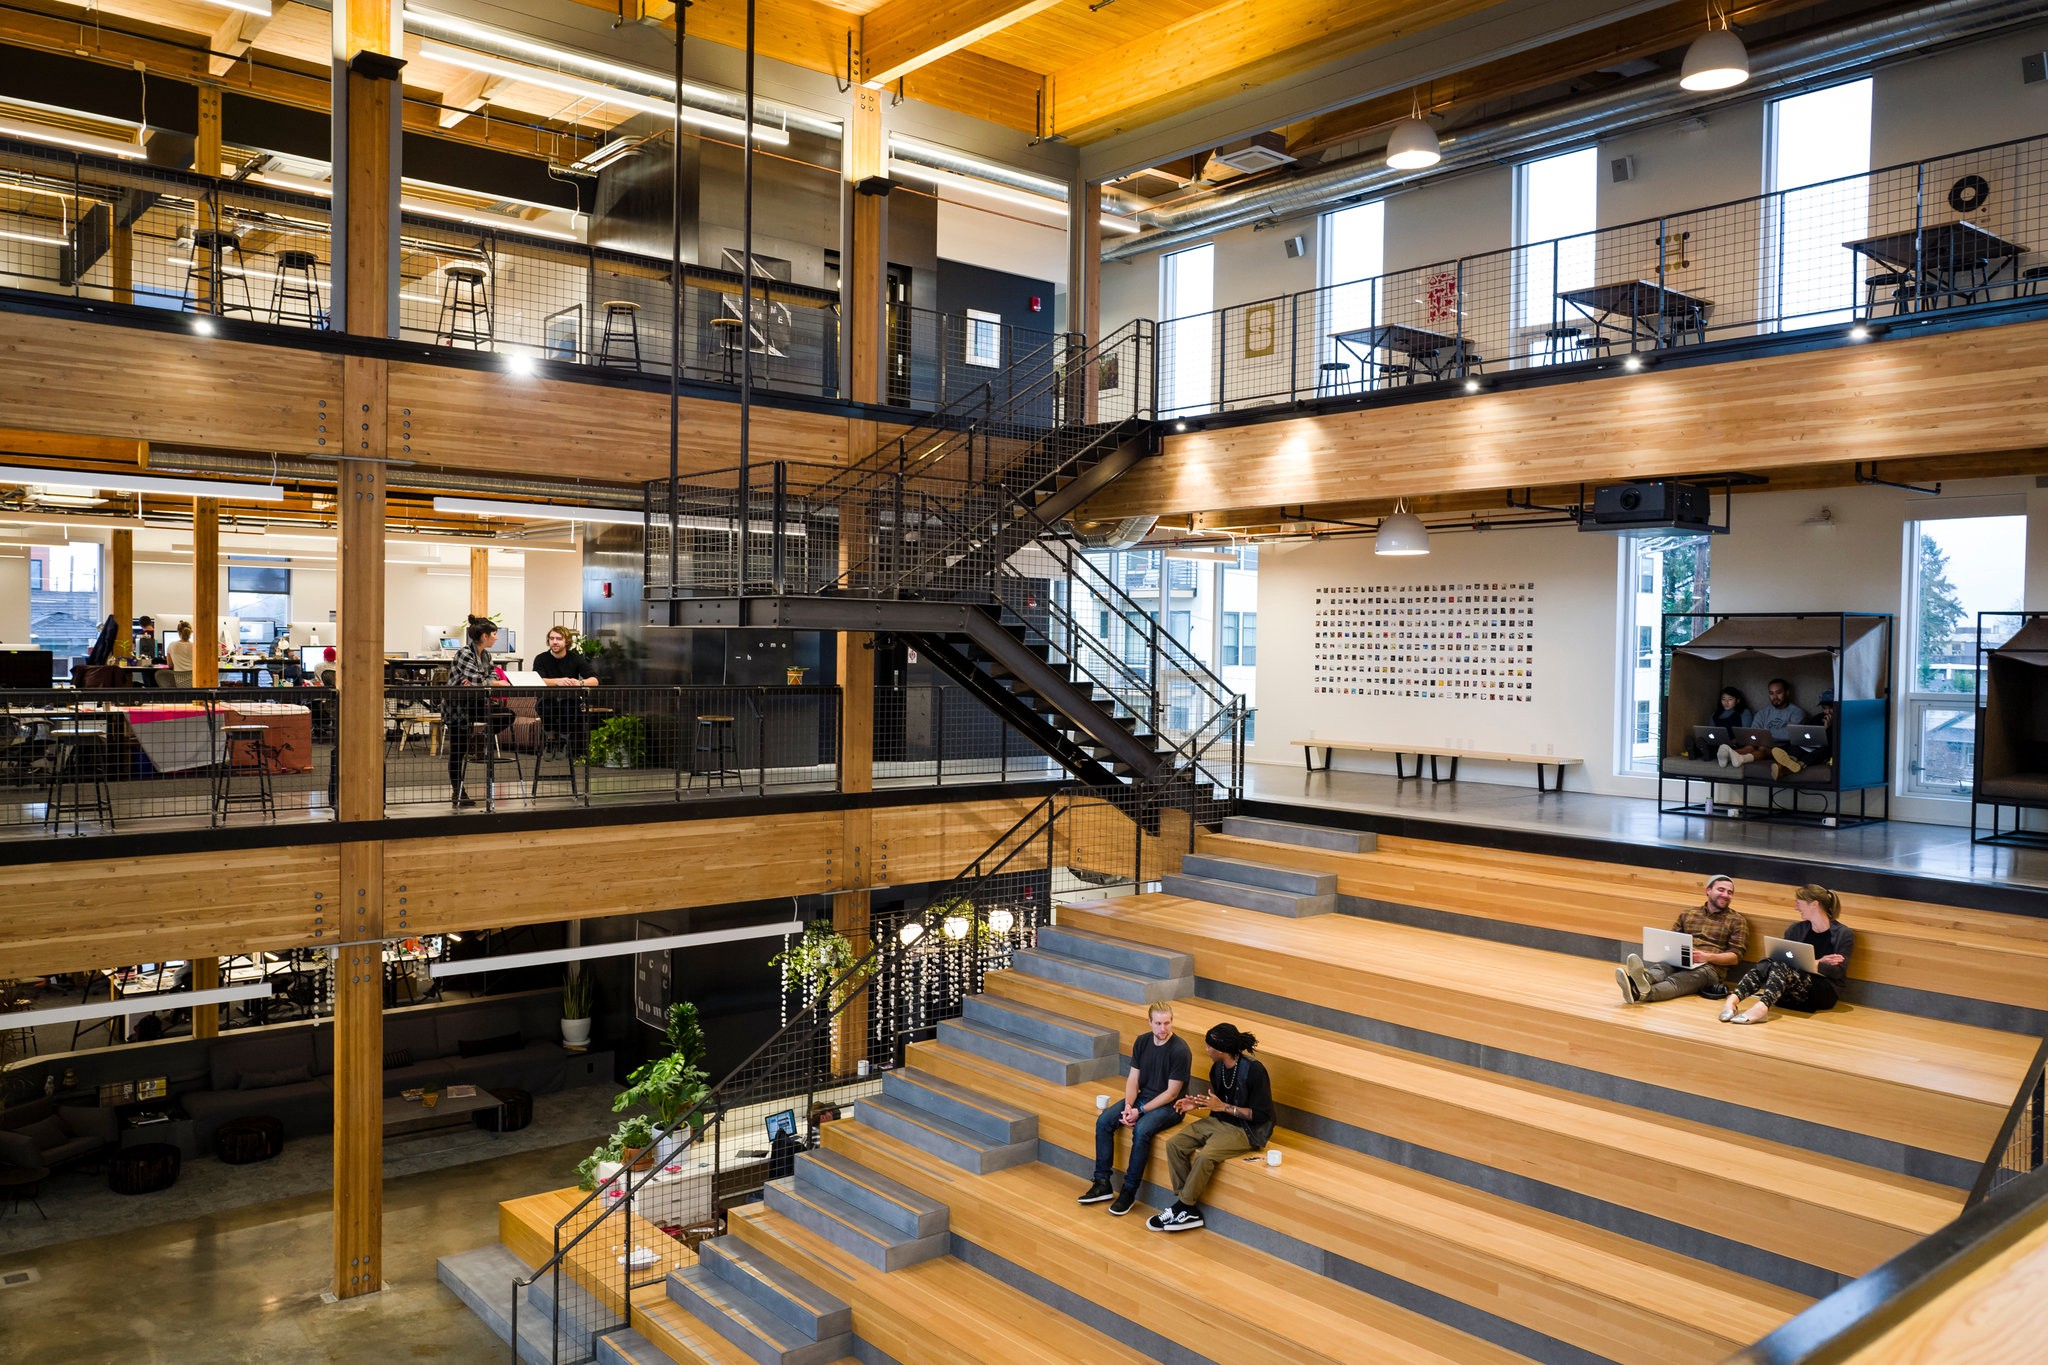 Interiors of Instrument's Portland office featuring a lobby and staircase leading to floors 2 and 3